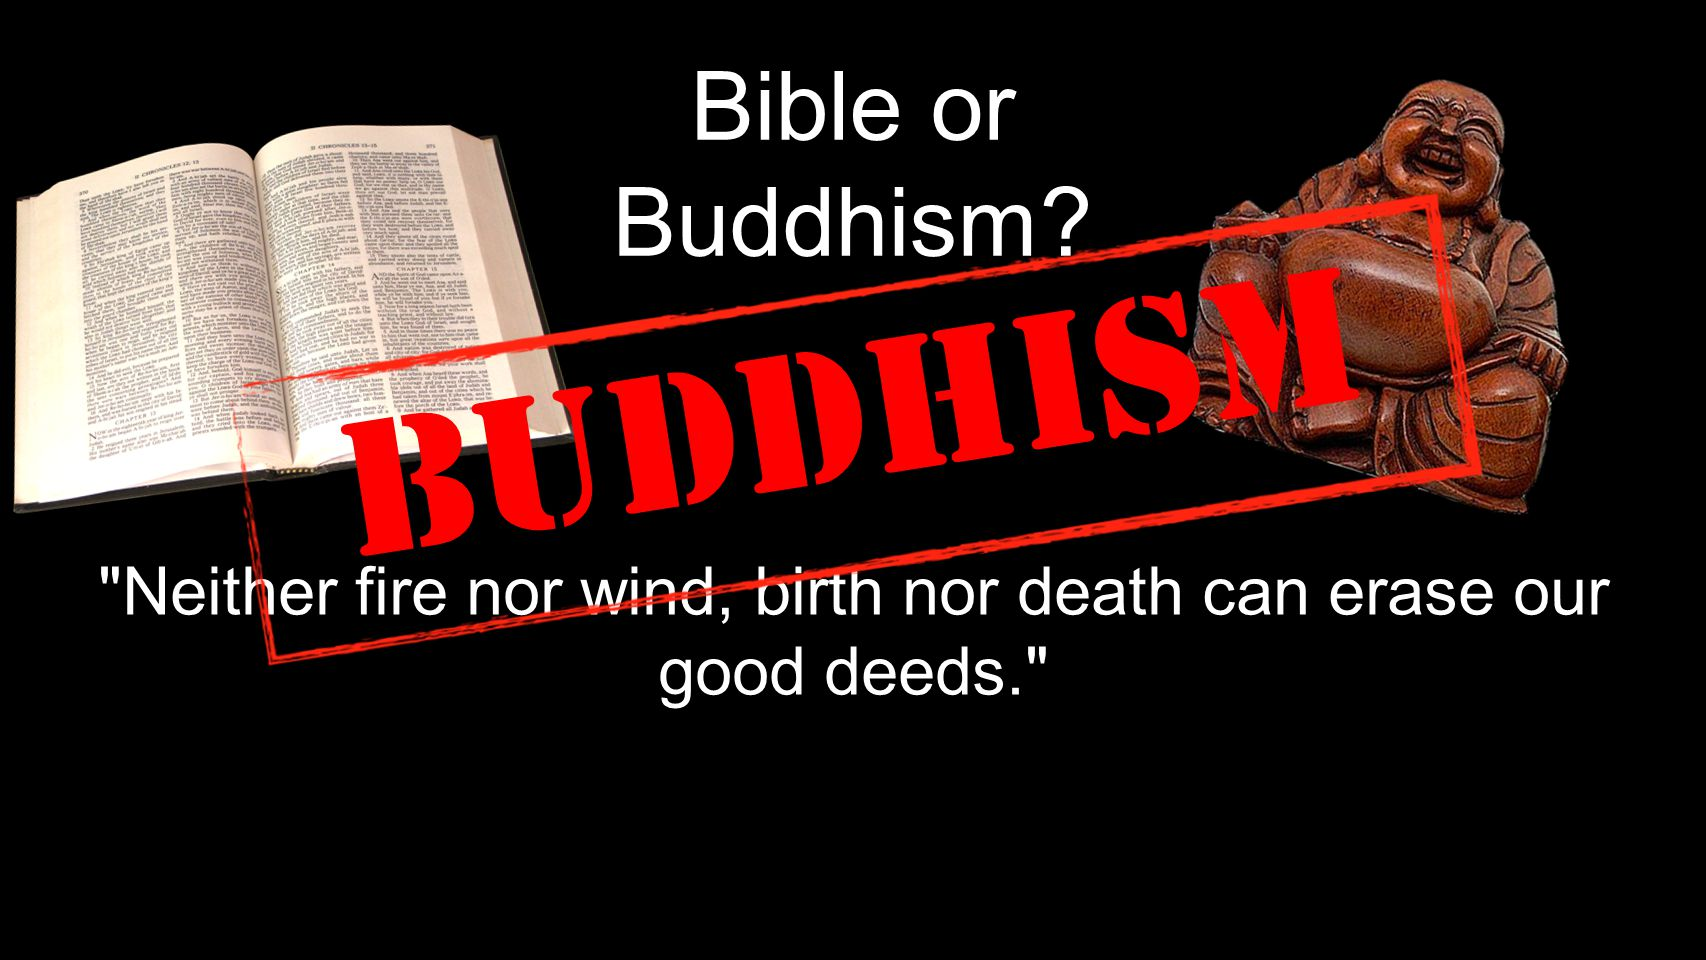 Bible or Buddhism Neither fire nor wind, birth nor death can erase our good deeds. Buddhism